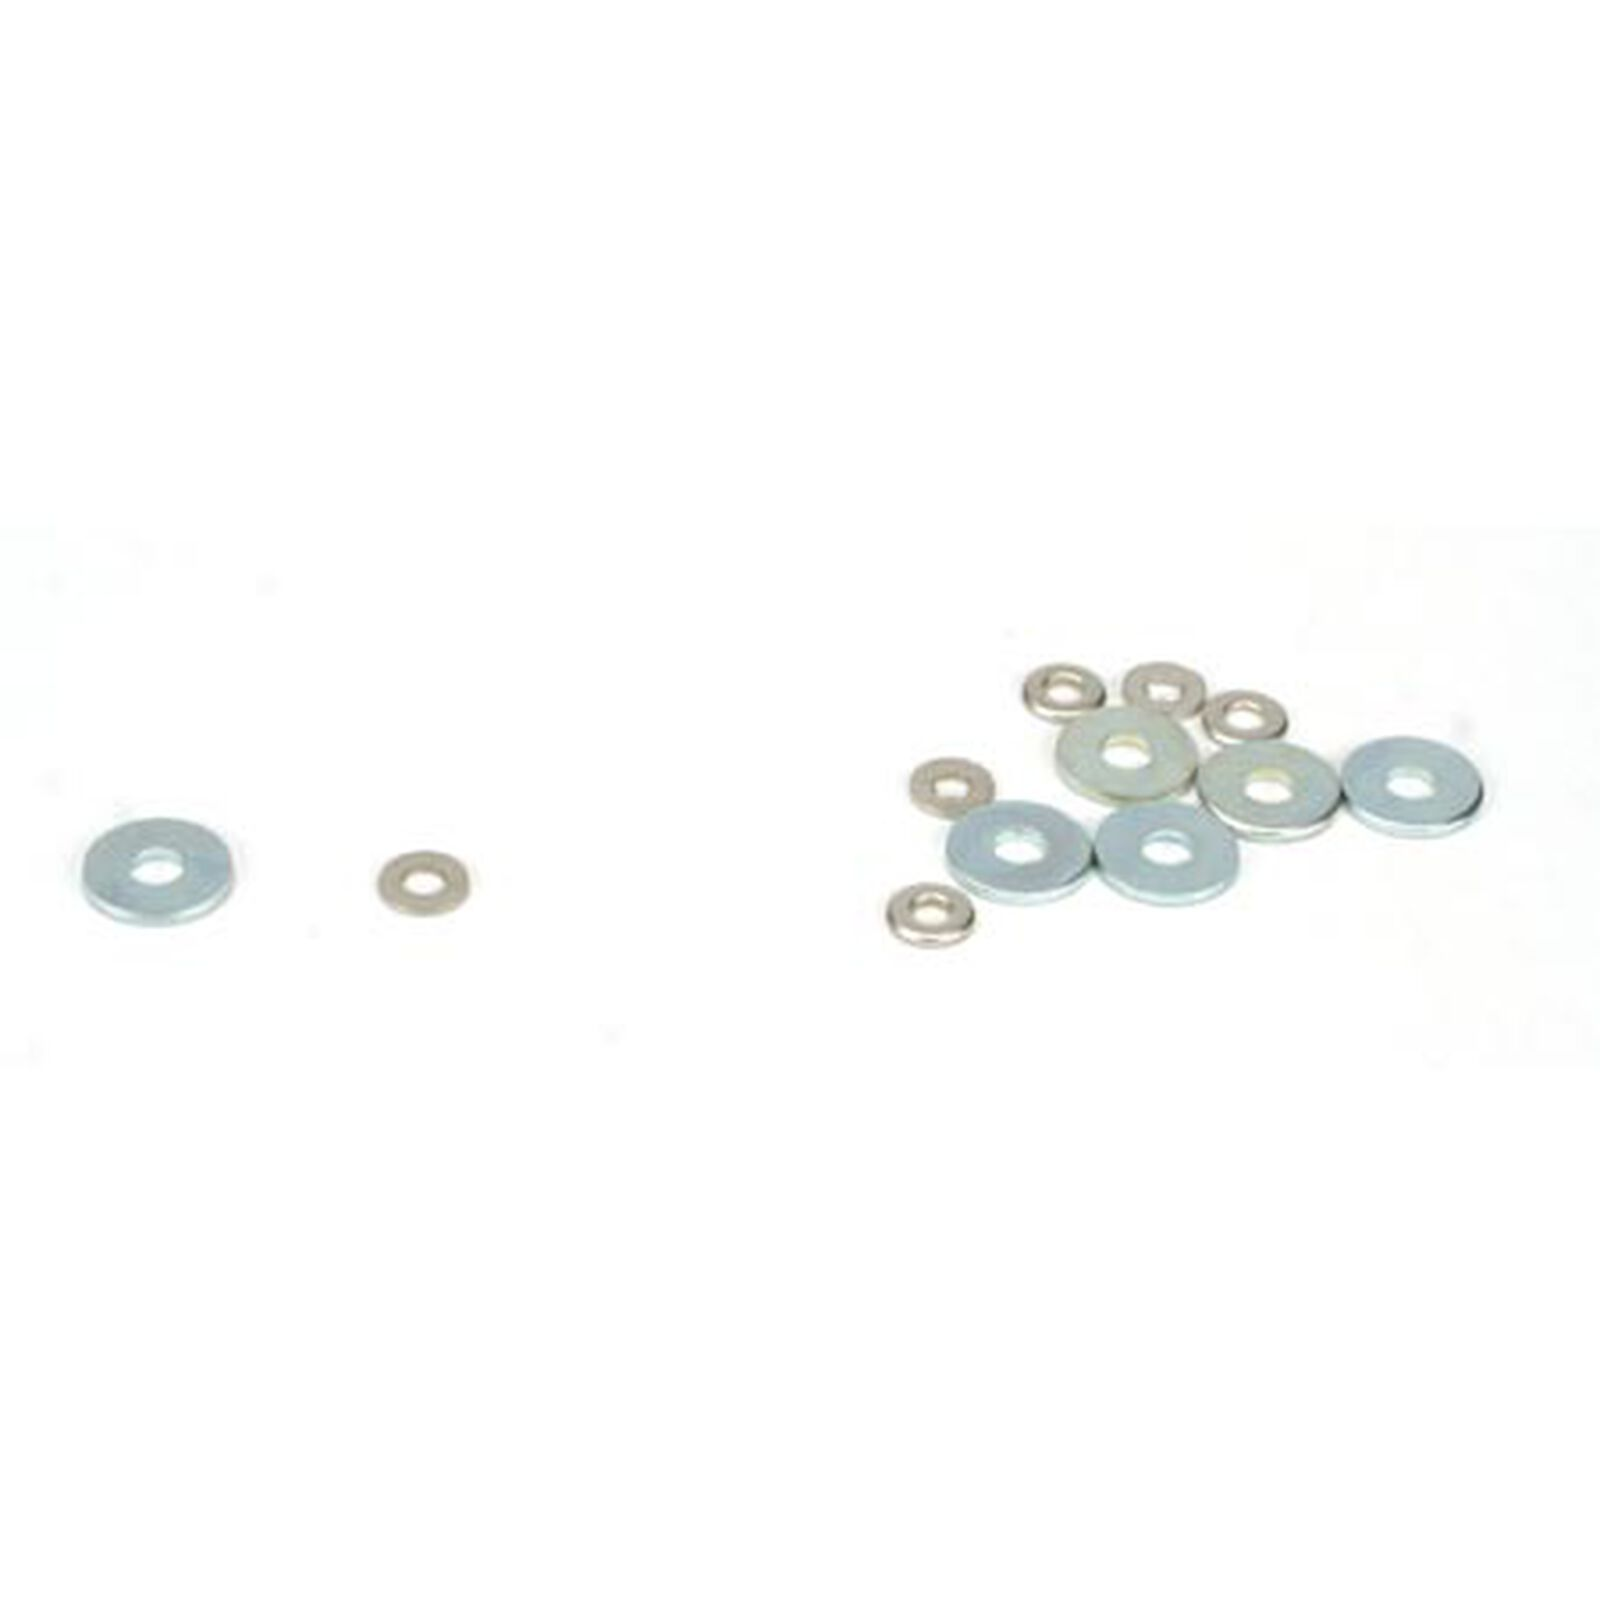 Washers, 3.6 x 10mm (6)